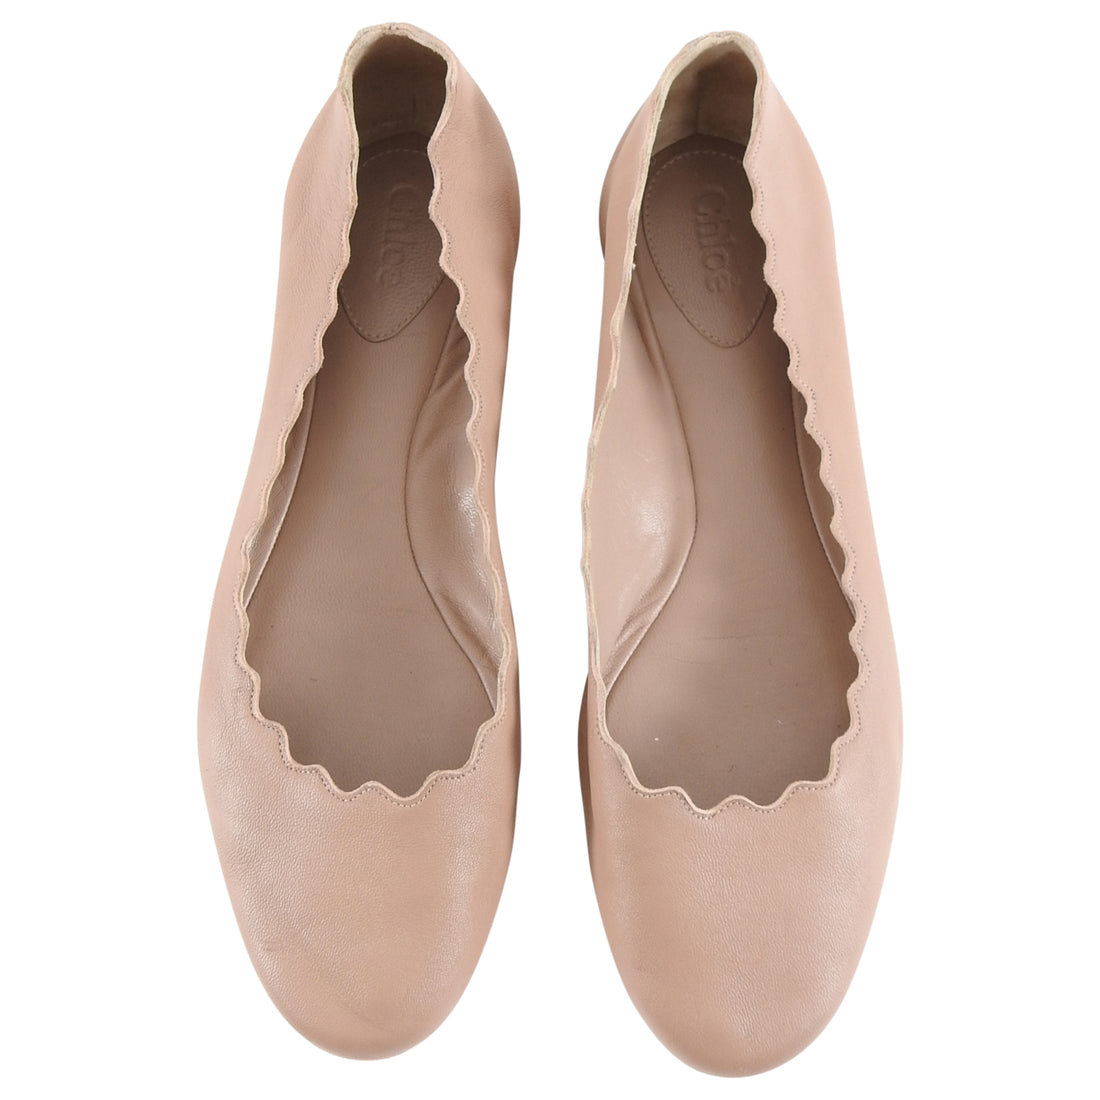 Choe Nude Scalloped Lauren Flat Shoes - 37